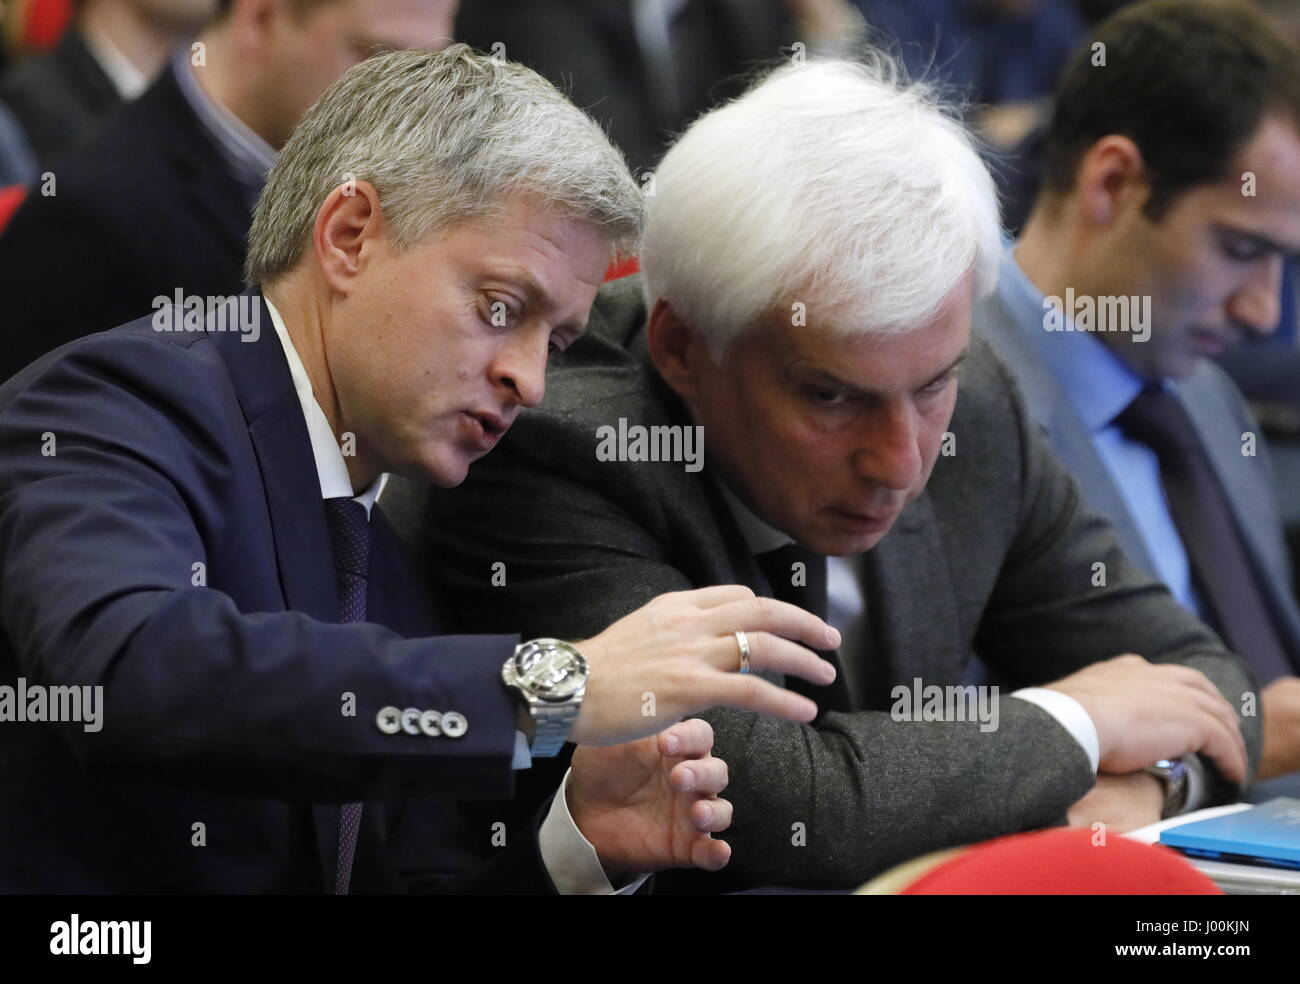 Moscow, Russia. 8th Apr, 2017. The president of Russia's Football National League (FNL), Igor Yefremov (L) at - Stock Image